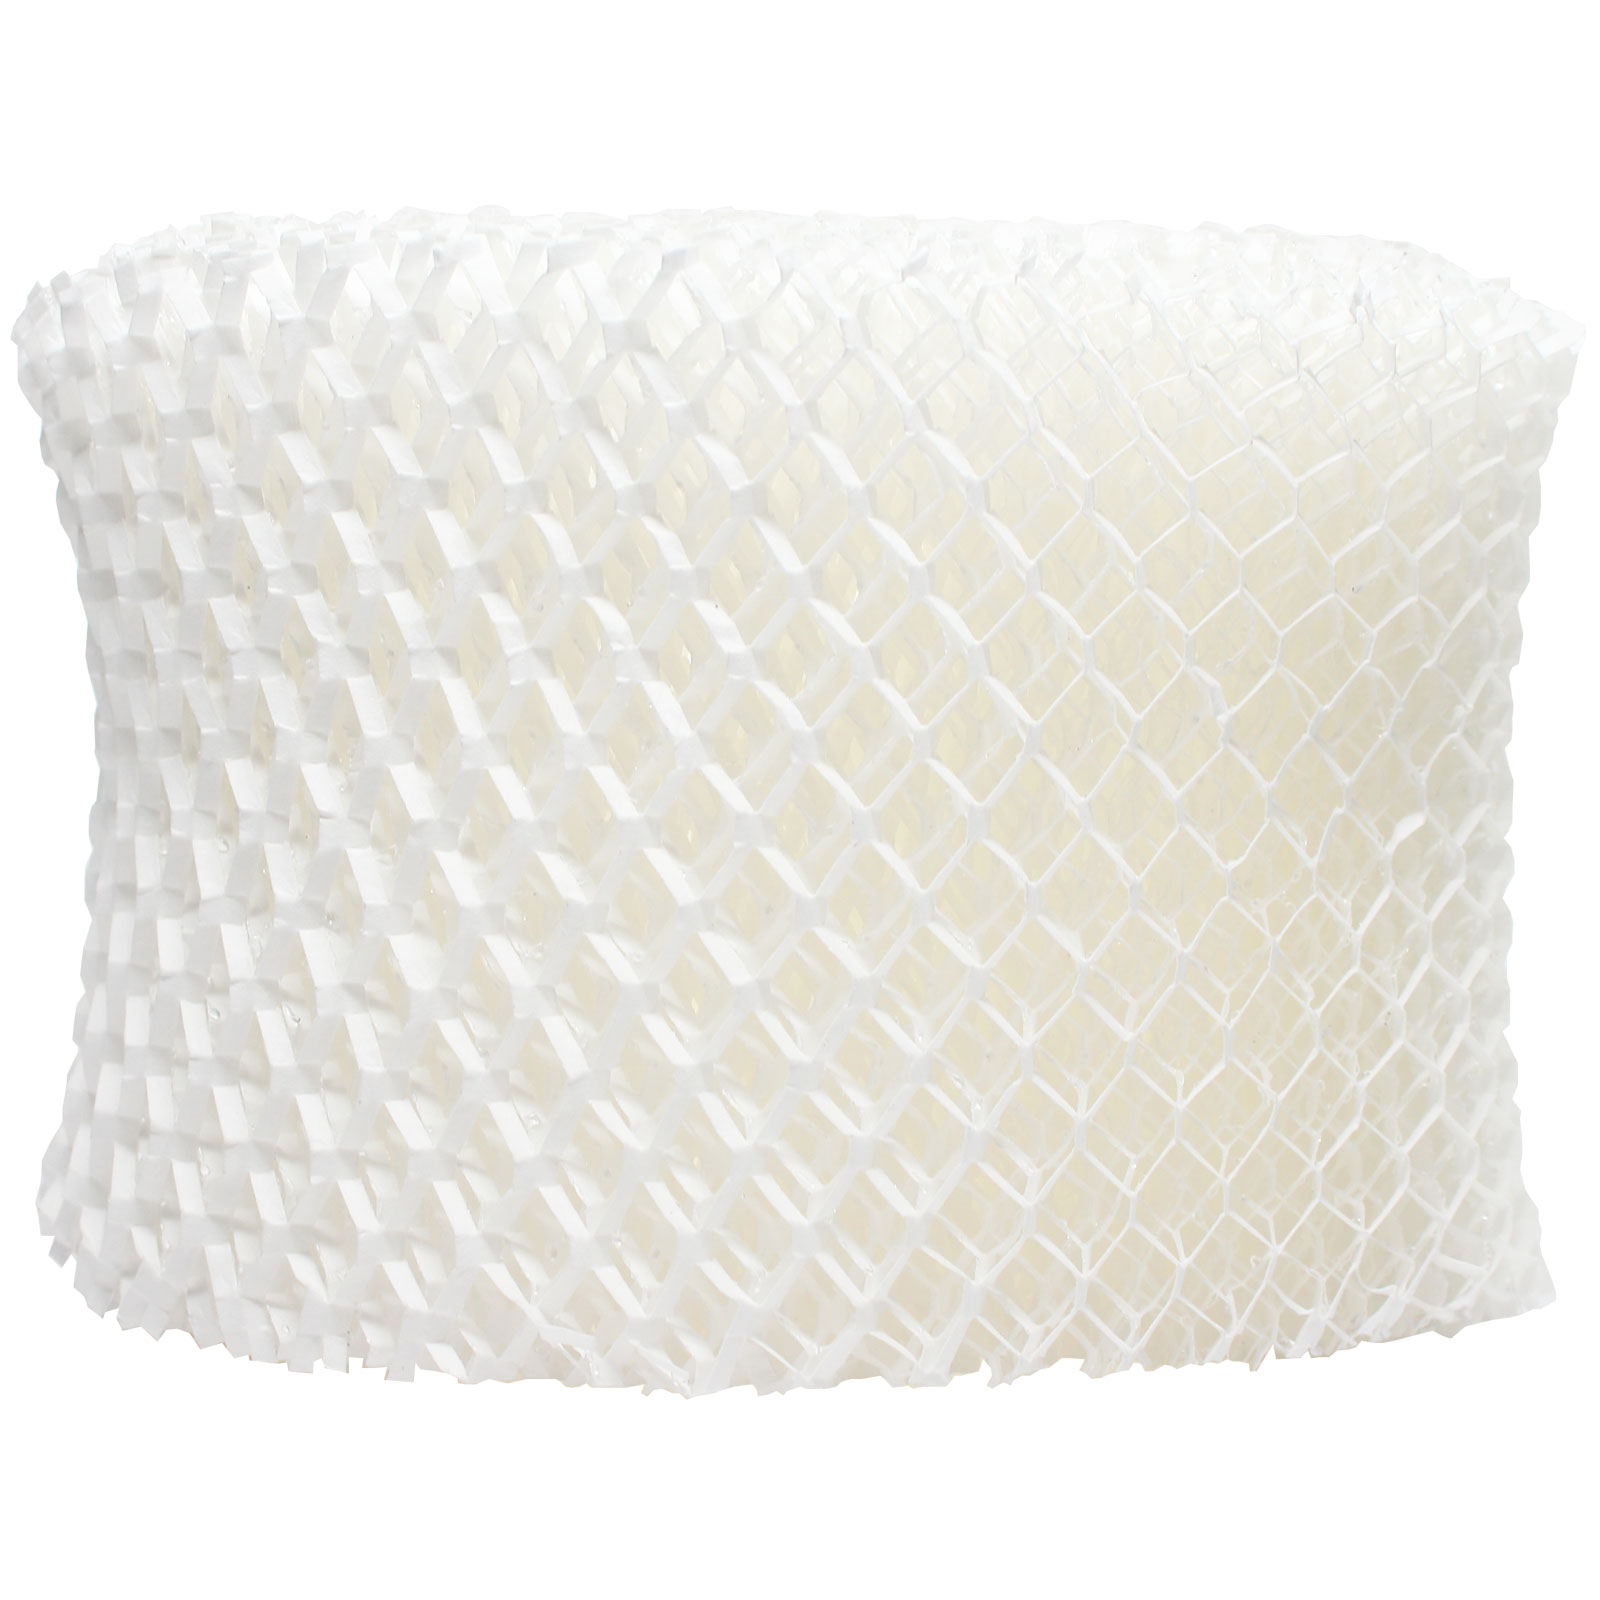 Replacement Honeywell HCM-646 Humidifier Filter - Compatible Honeywell HAC-504, HAC-504AW Air Filter - image 3 of 4